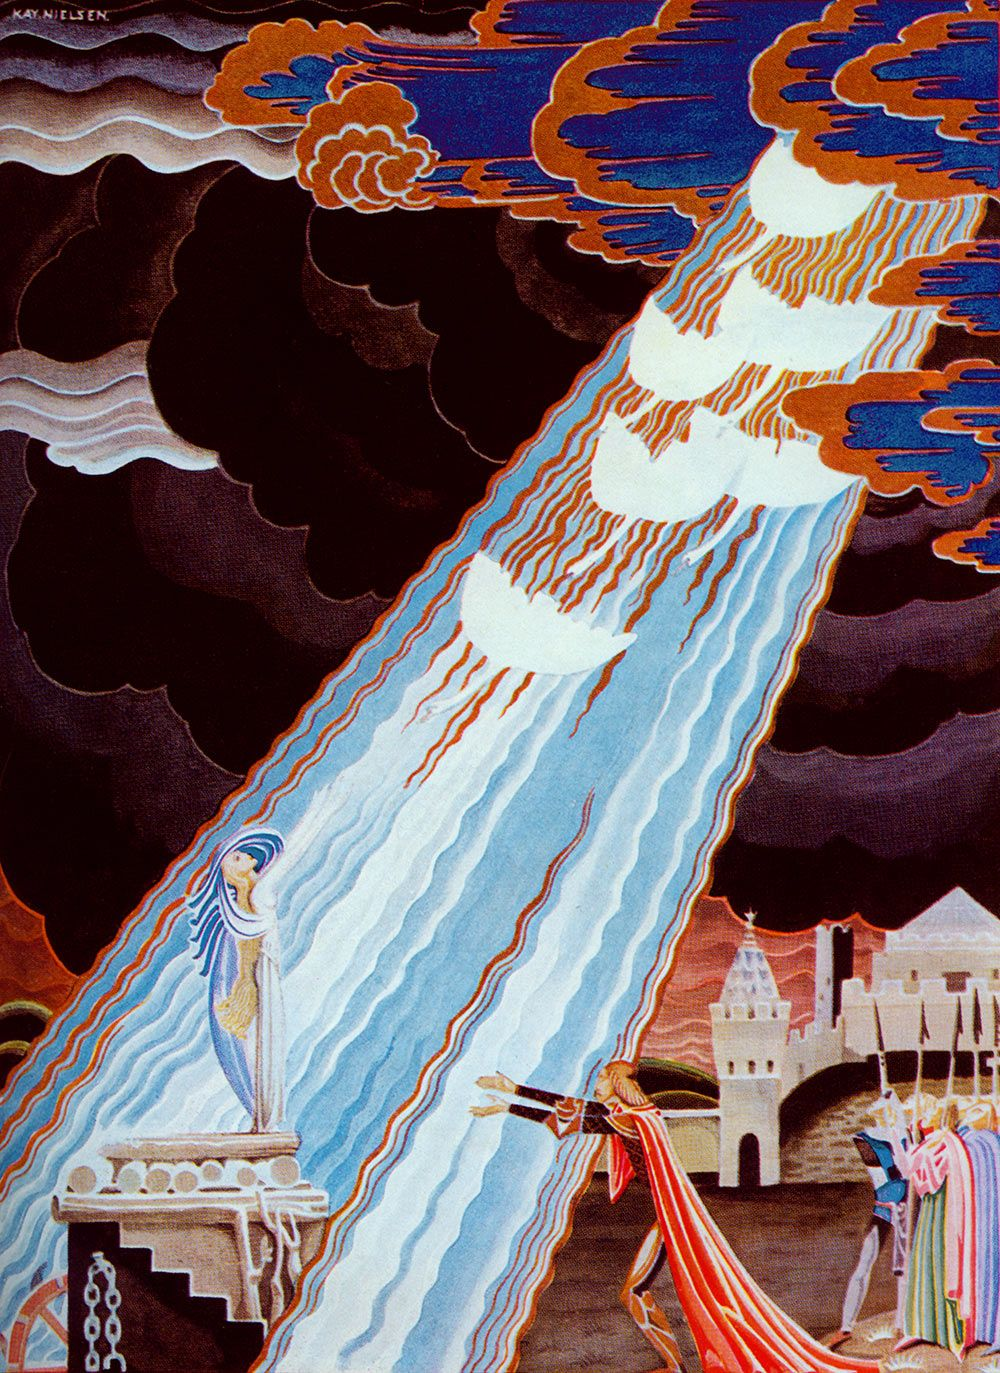 The king was overcome with joy. Fairy Tales of the Brother Grimm, Kay Nielsen illustration